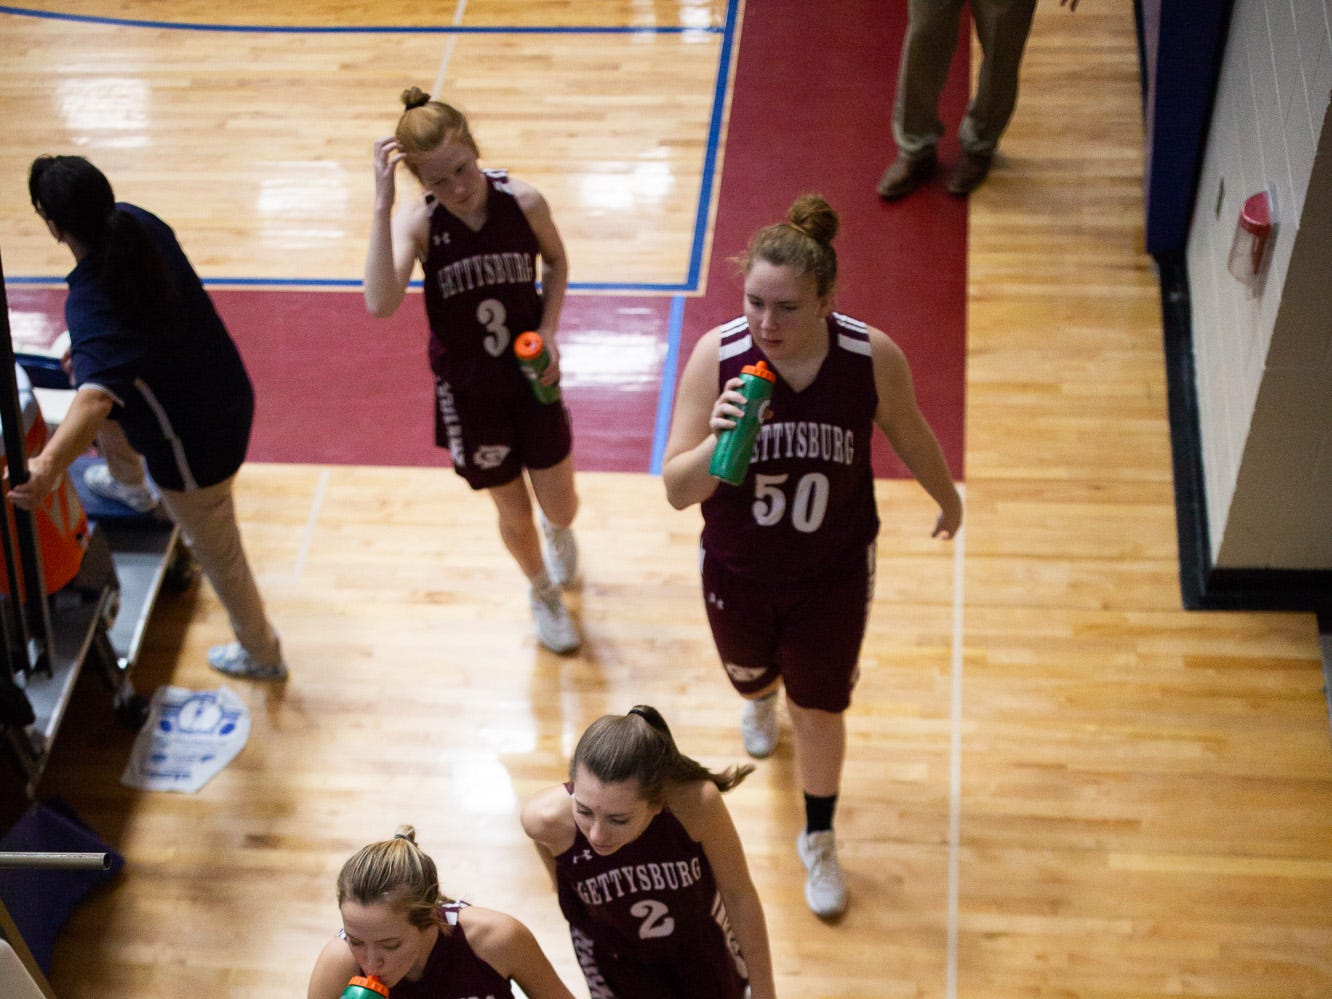 The Gettysburg Lady Warriors walk to the lockerroom for halftime during the championship game between New Oxford and Gettysburg at the New Oxford Girls Basketball Tip-Off Tournament, Saturday, Dec. 8, 2018, in New Oxford. The Gettysburg Lady Warriors defeated the New Oxford Lady Colonials 47-40.